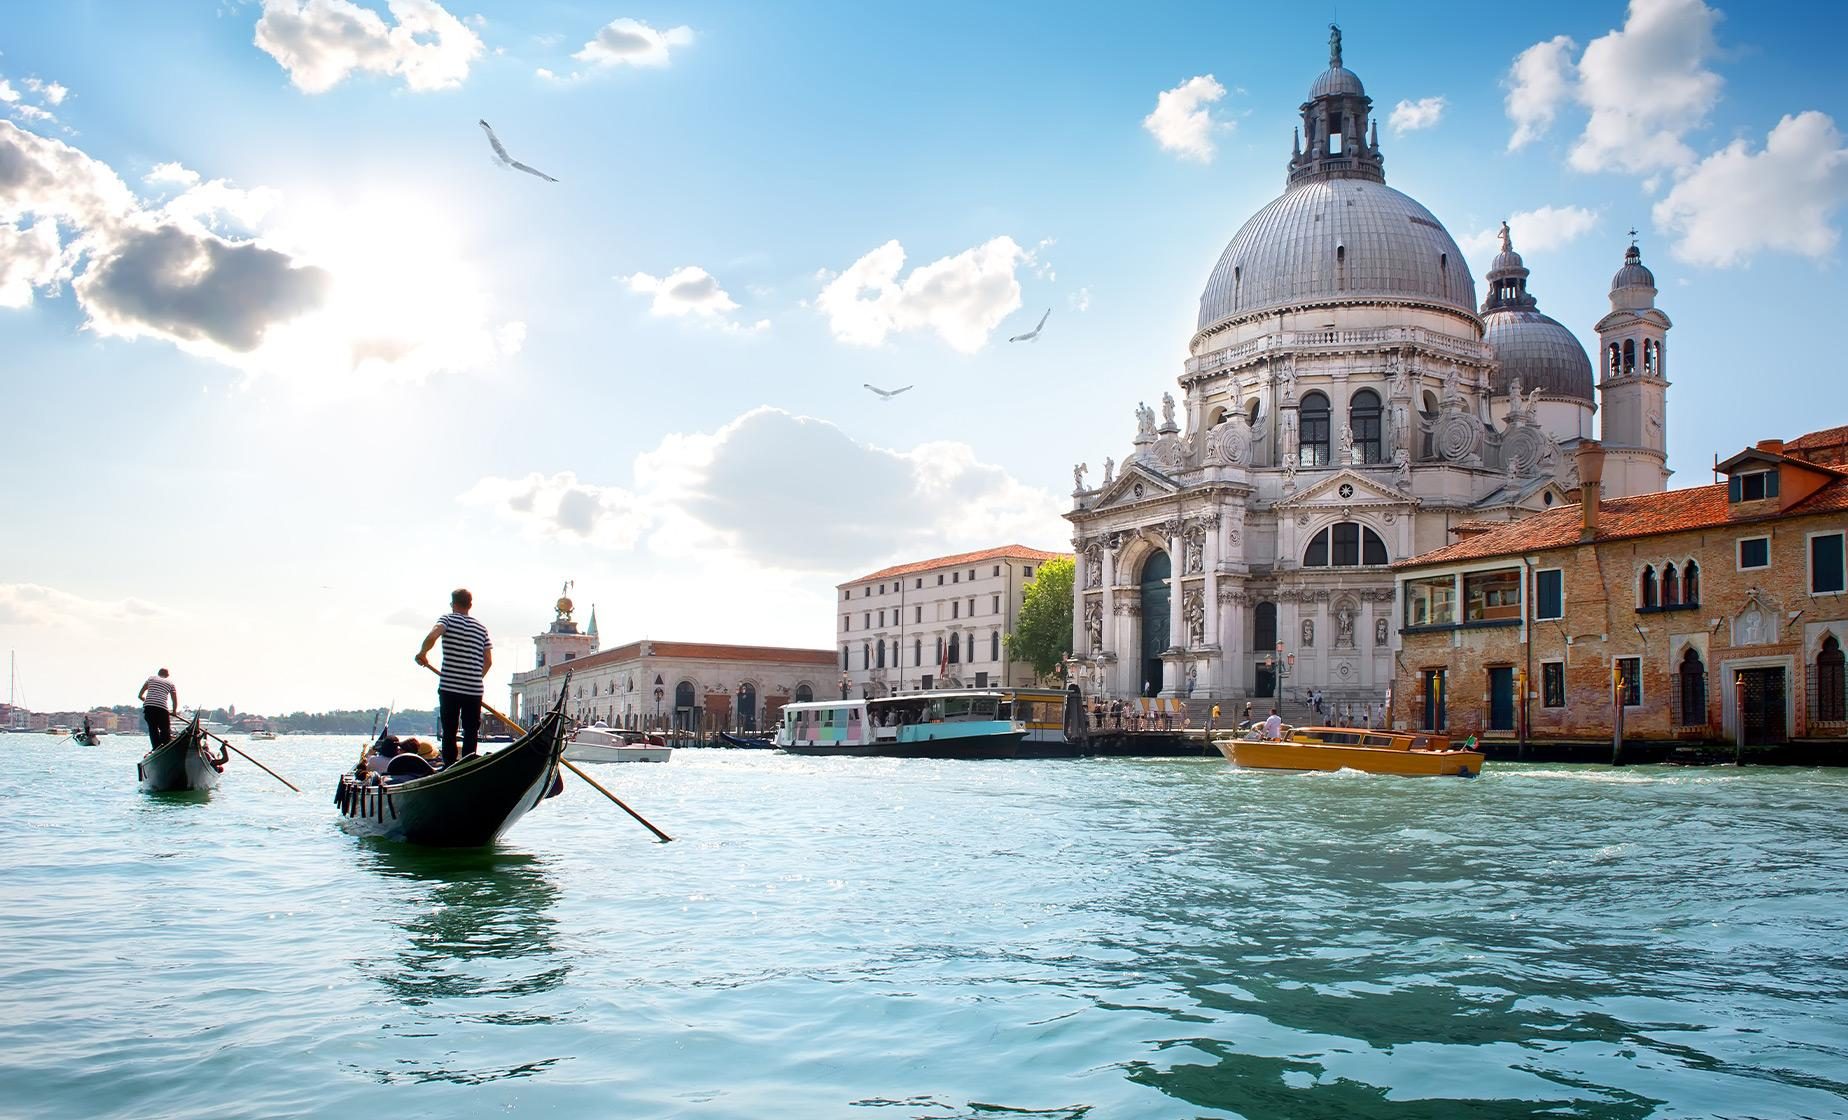 Venice Gondola Ride Tour (St. Mark's Square, Grand Canal)